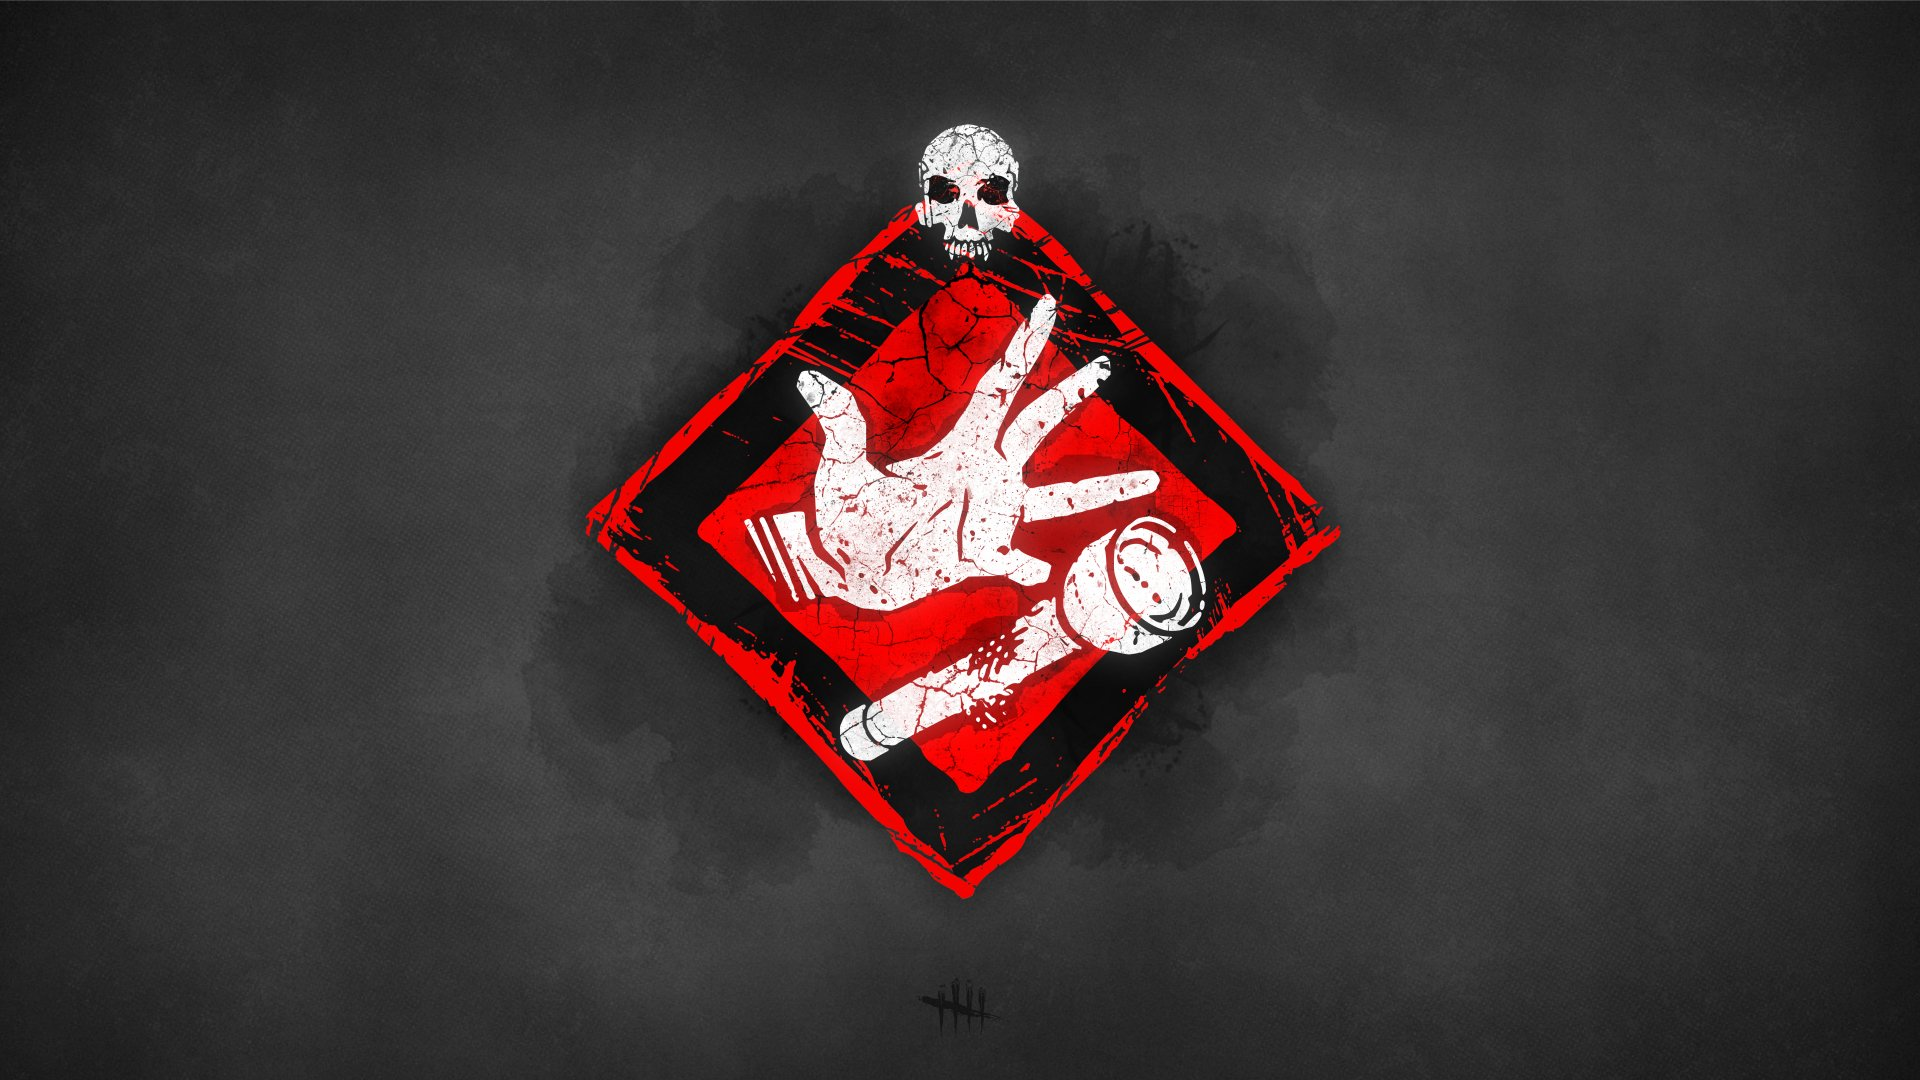 Video Game - Dead by Daylight  Franklin's Demise (Dead by Daylight) Leatherface (Dead by Daylight) Minimalist Video Game Wallpaper